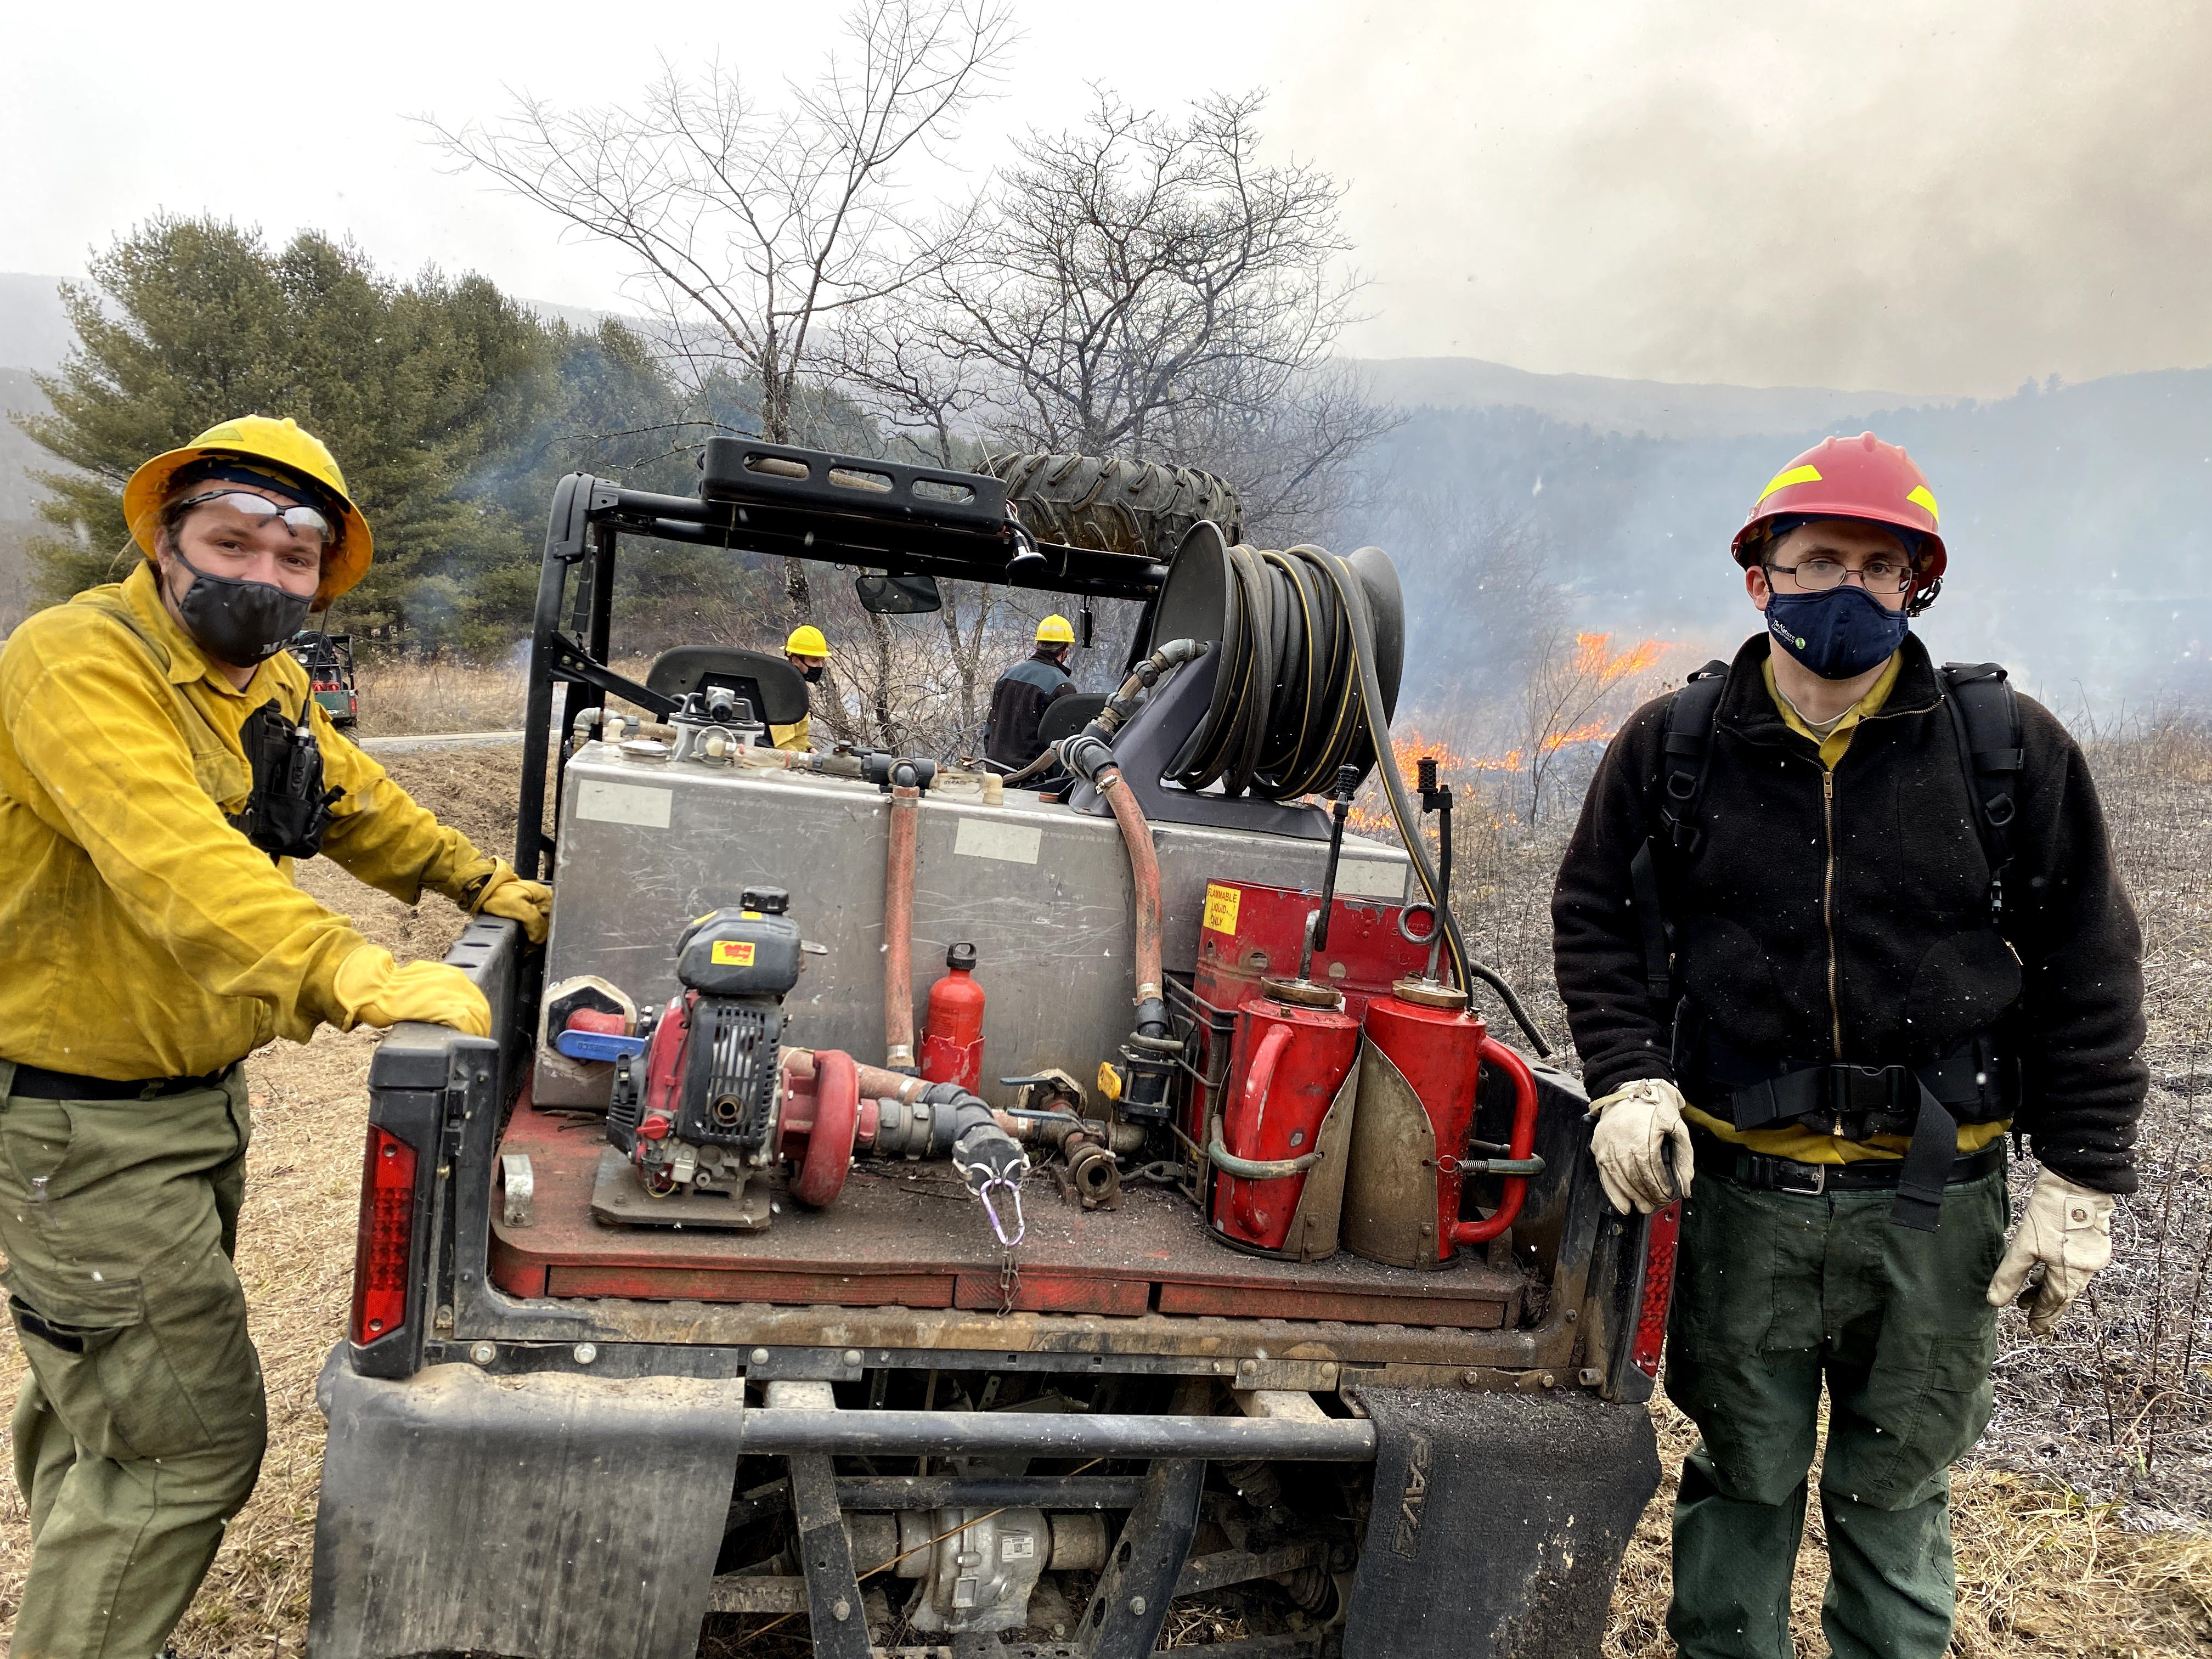 Two men wearing fire gear stand on either side of a small fire engine. Behind them two men monitor a fire during a controlled burn. The air is filled with flecks of either snow or ash.